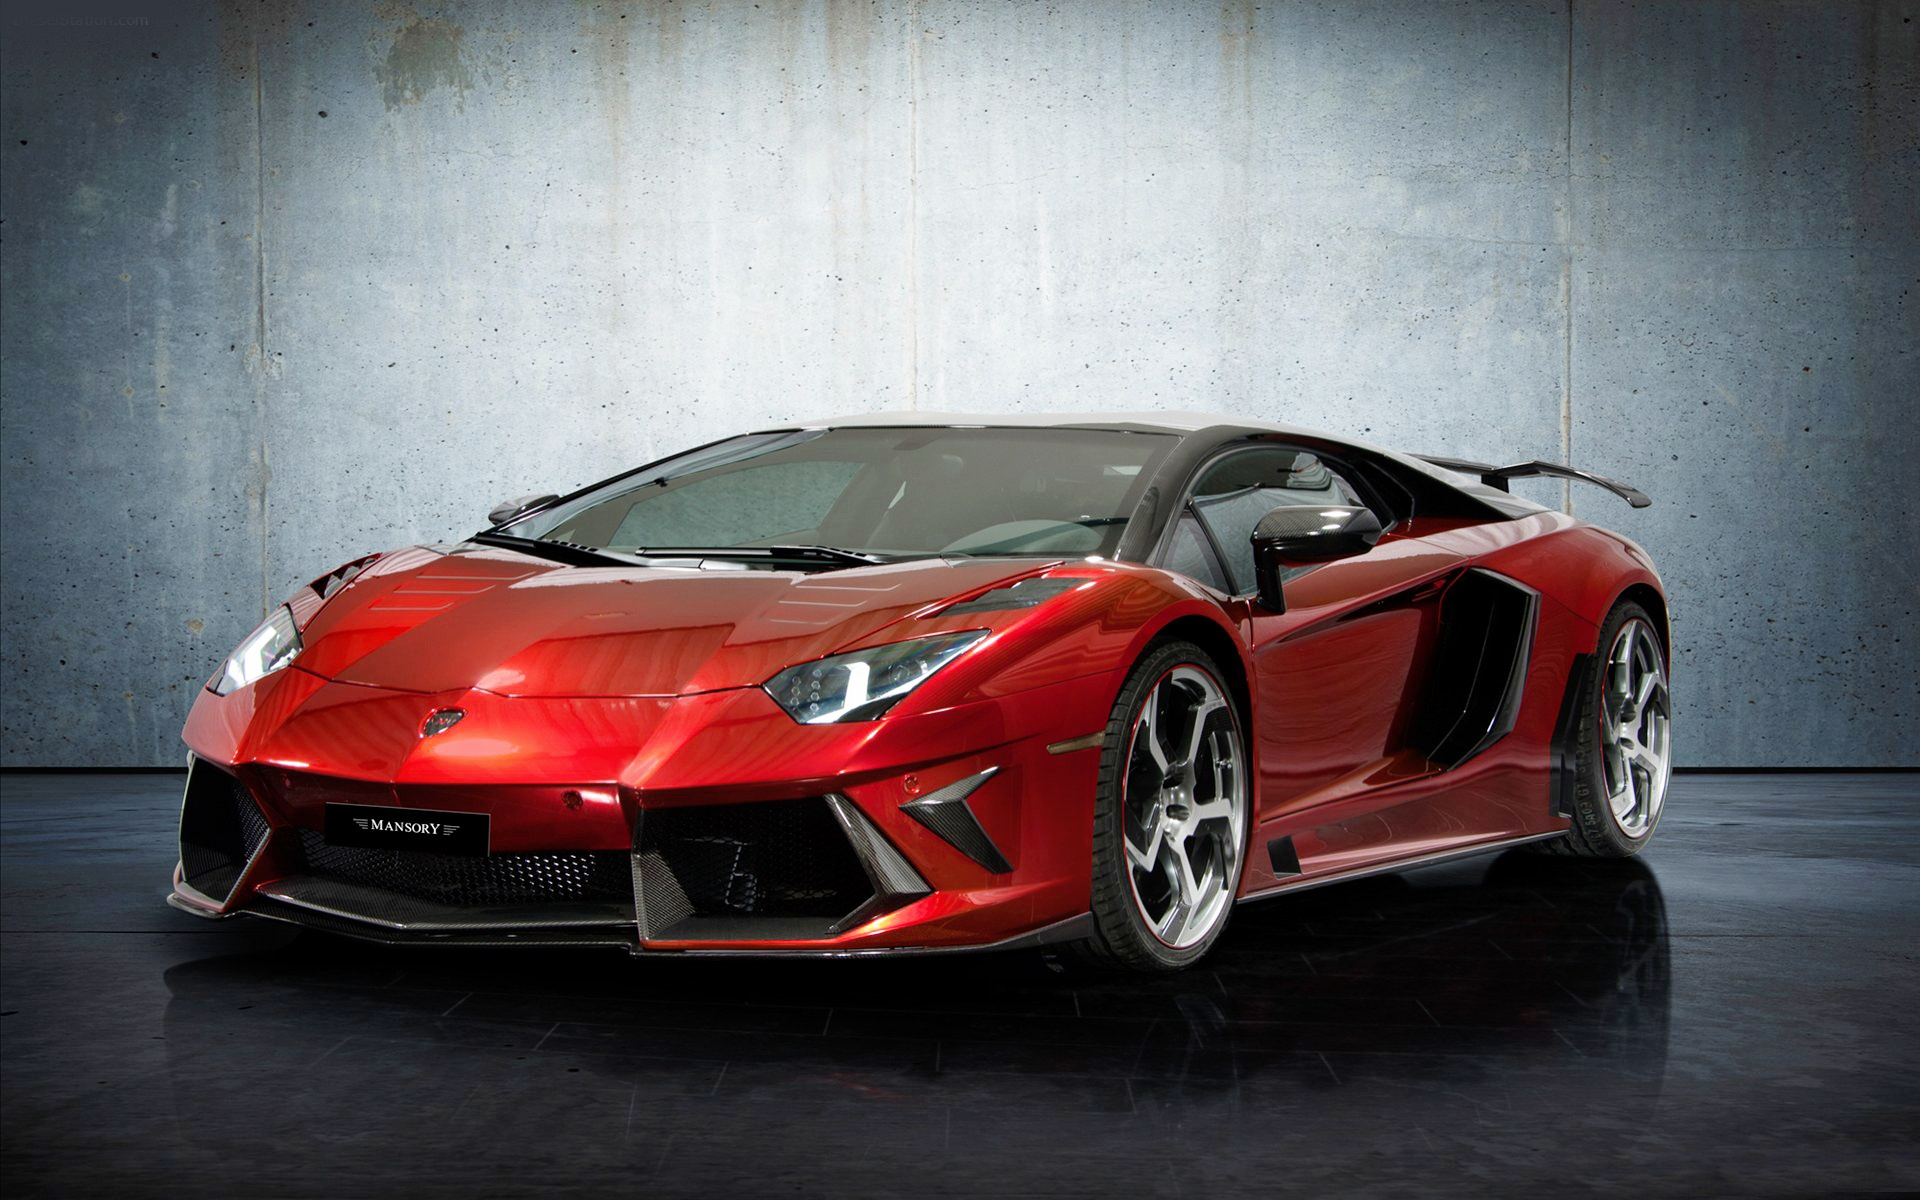 Lamborghini Aventador HD wallpaper   WALLPAPERS HD 1920x1200